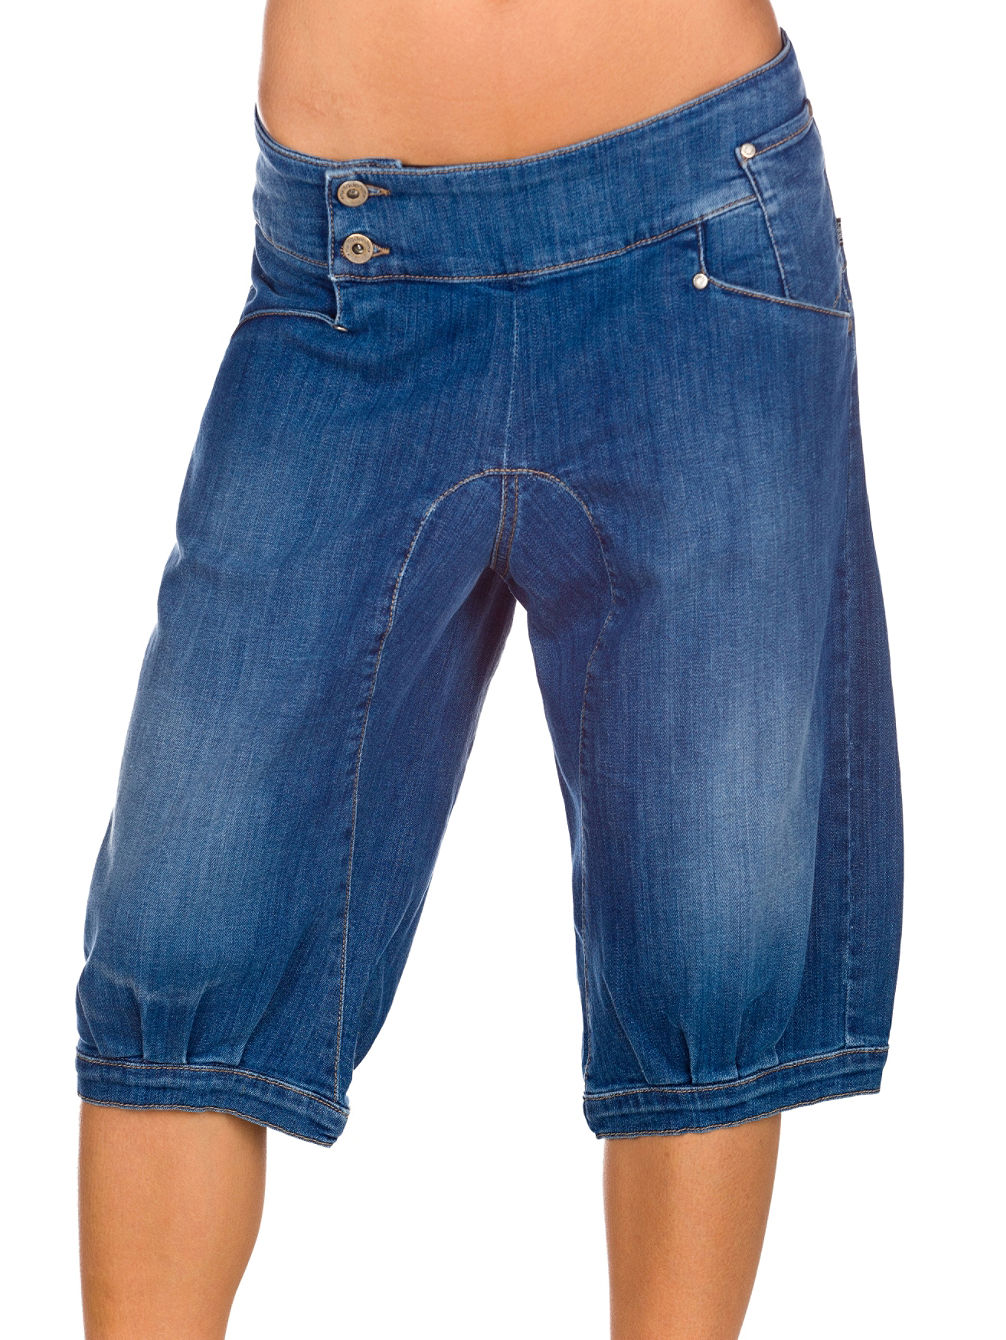 Radio Denim Short Women